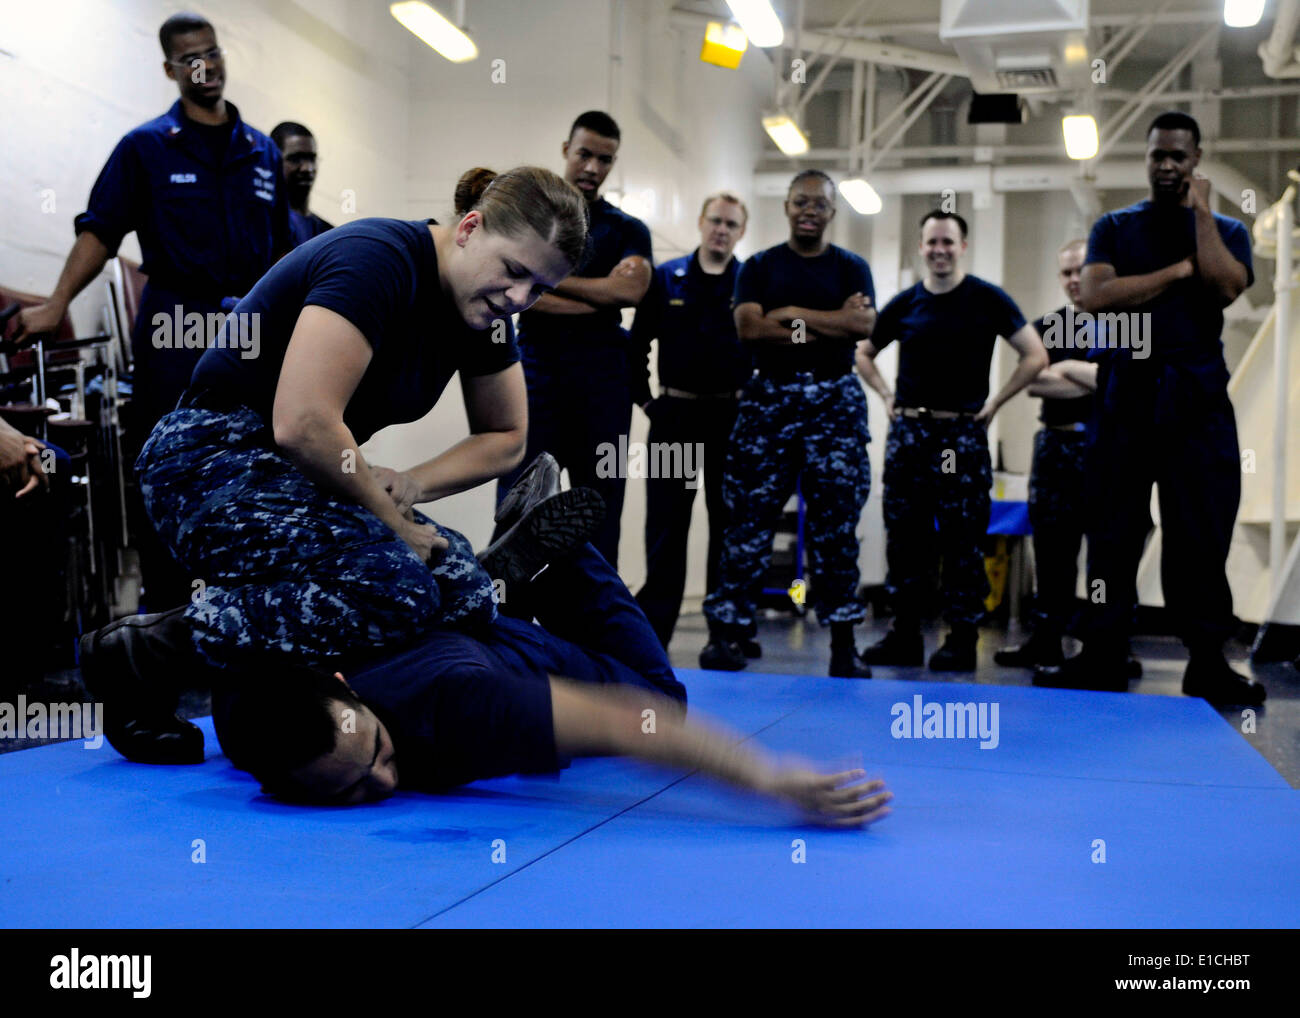 U.S. Navy Master-at-Arms 1st Class Amber Mathwig, left, demonstrates the proper technique to subdue a hostile attacker during a Stock Photo